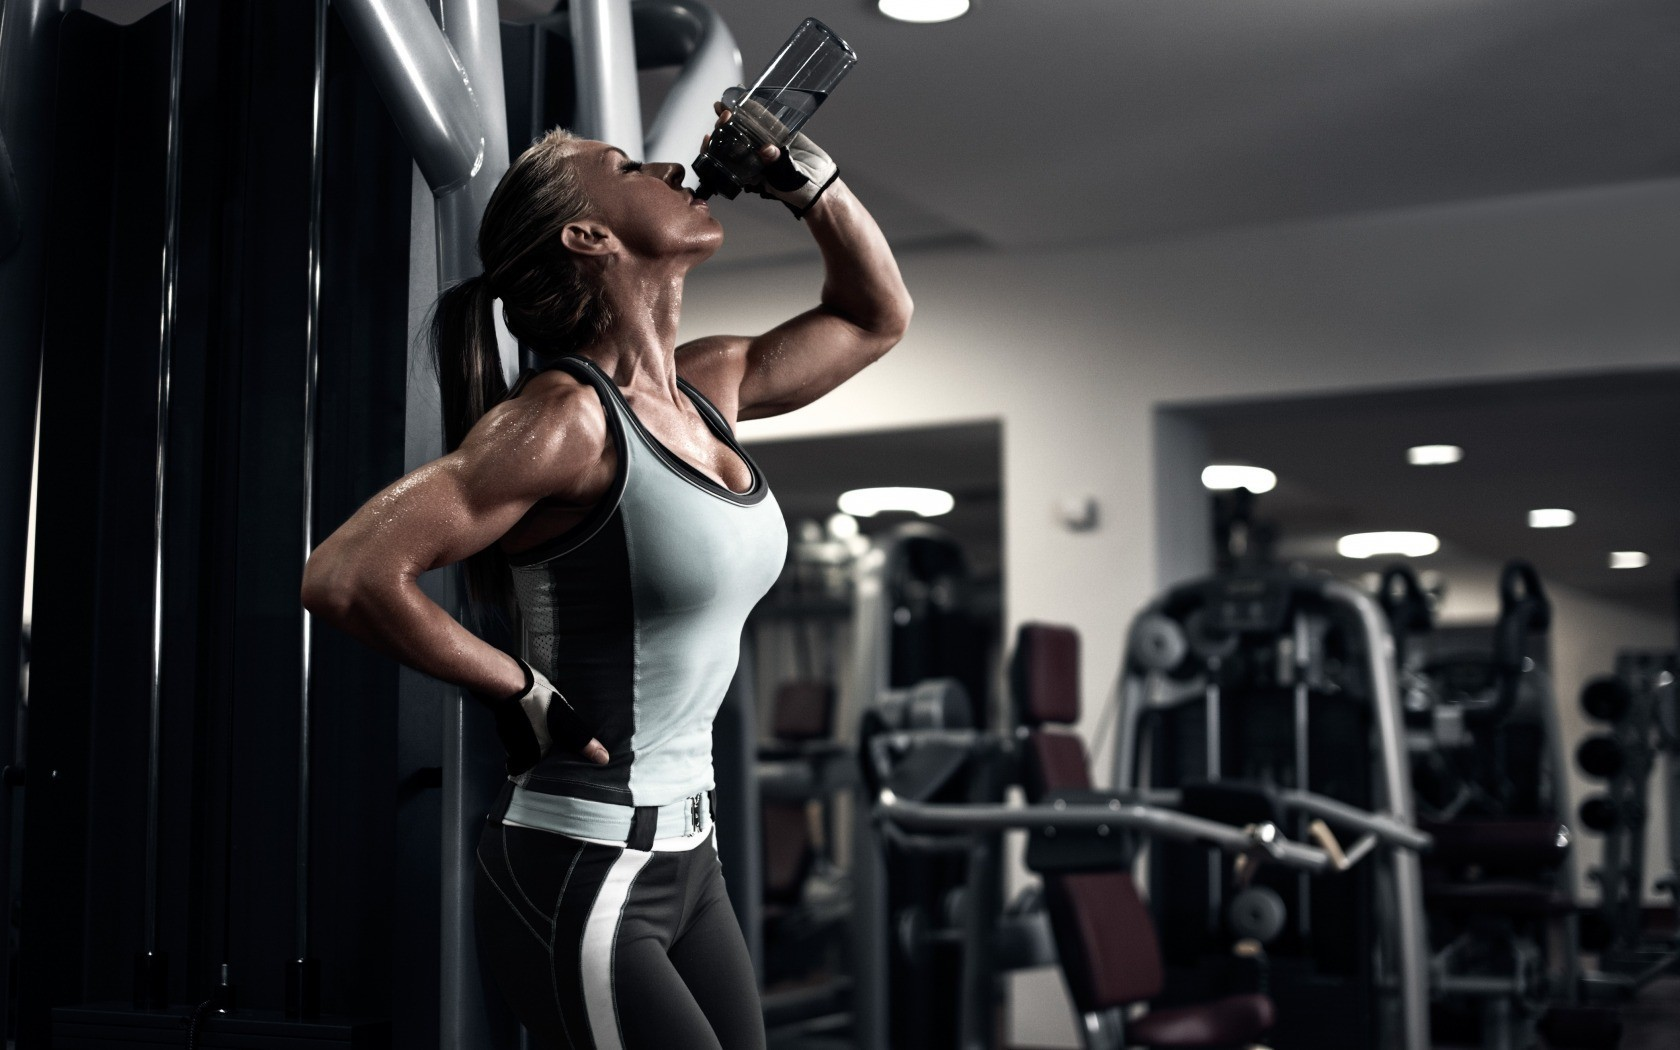 The_girl_at_the_gym_drinking_water_094943_